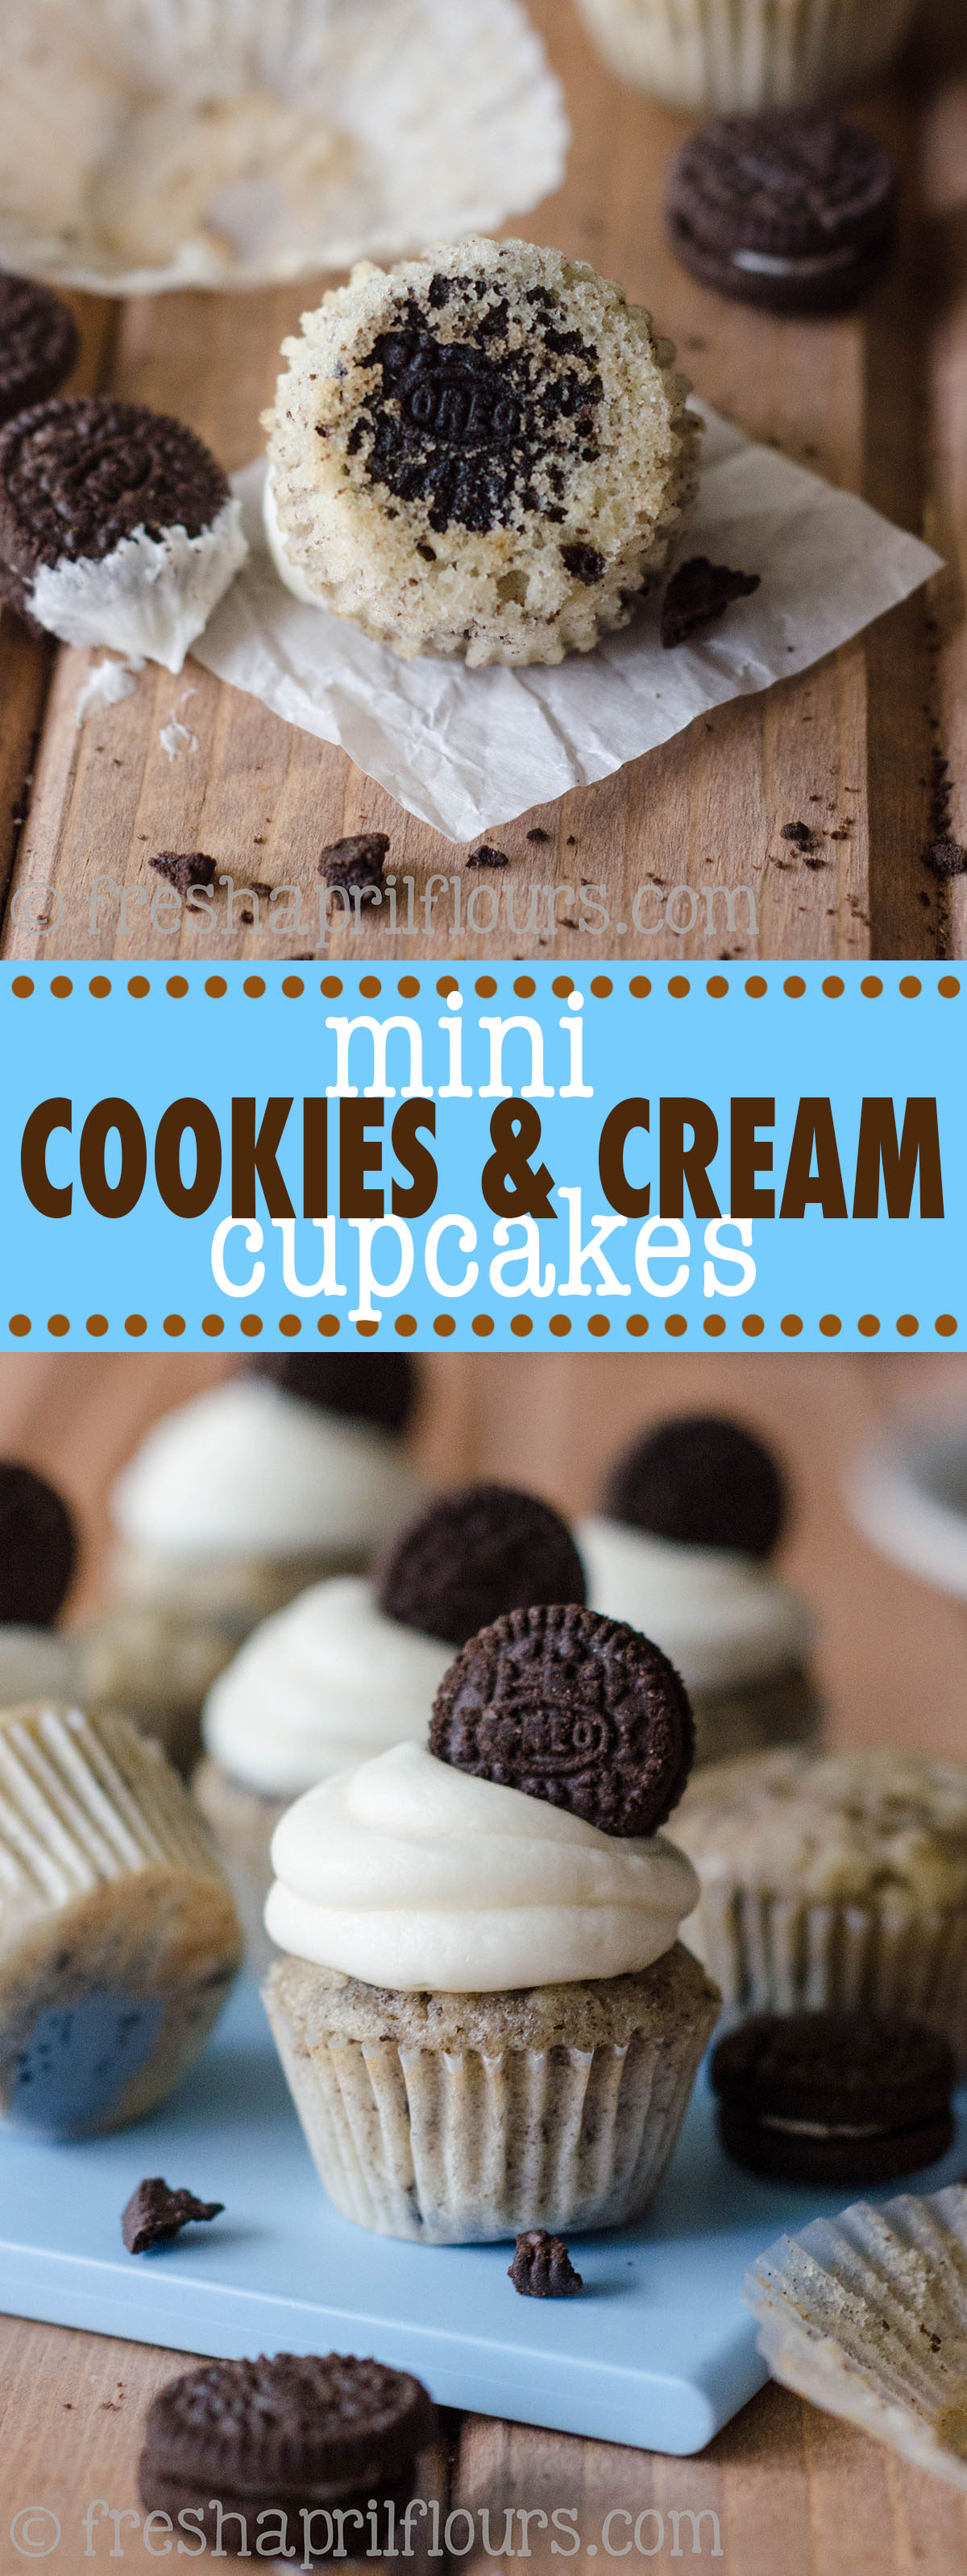 Mini Cookies & Cream Cupcakes: Mini vanilla cupcakes filled with crushed Oreos, and topped with creamy vanilla buttercream. Plus, a mini Oreo at the bottom of each one! Instructions for standard cupcakes and layer cake included as well.